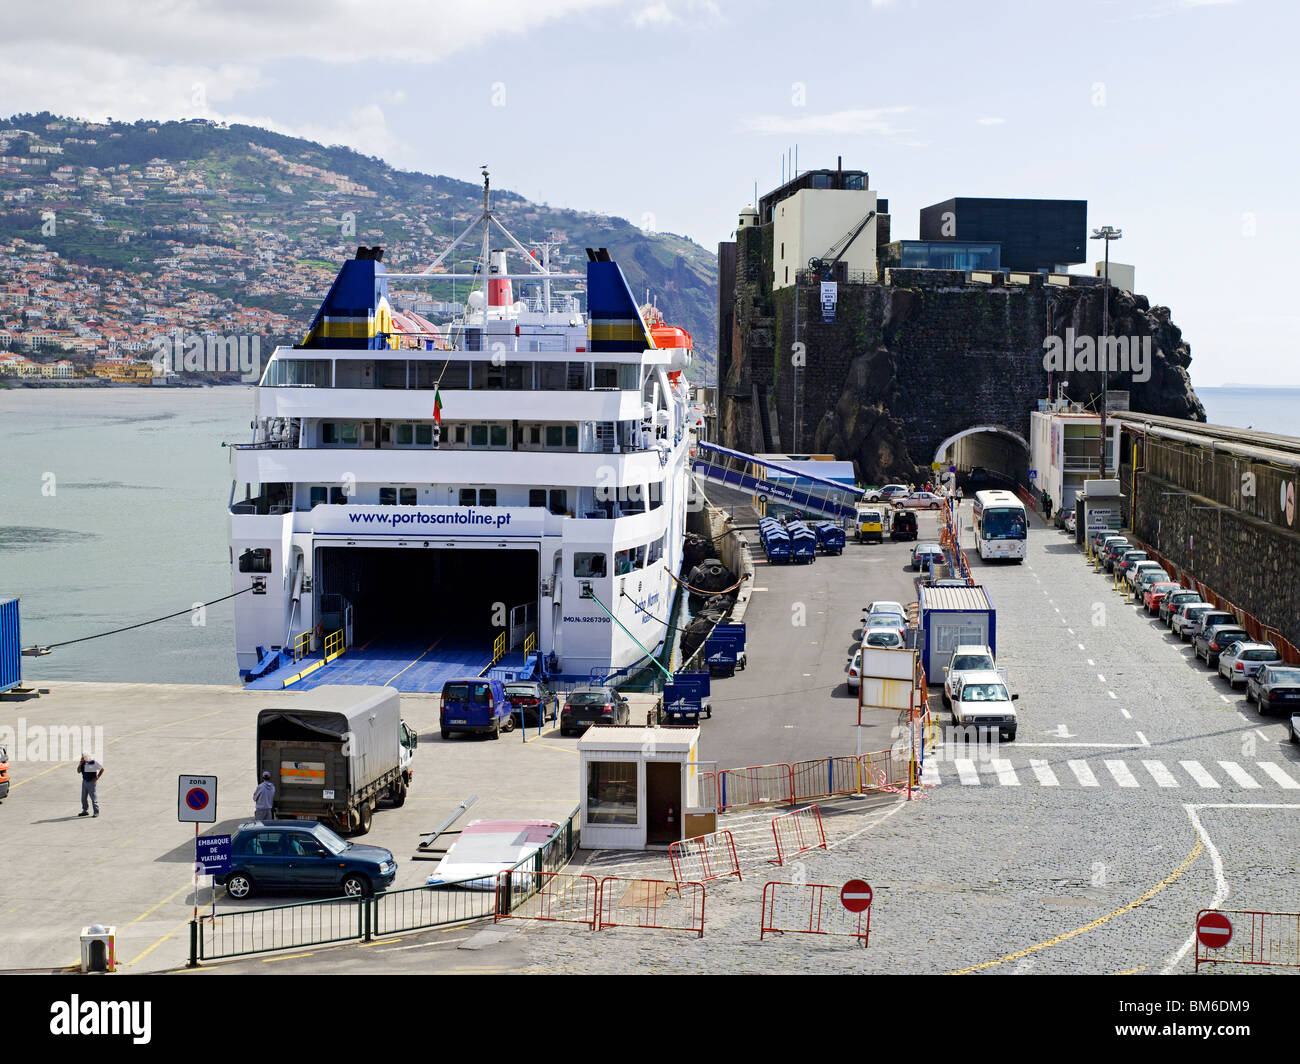 Lobo Marinho Porto Santo Ferry moored in the harbour Funchal Madeira Portugal EU Europe - Stock Image